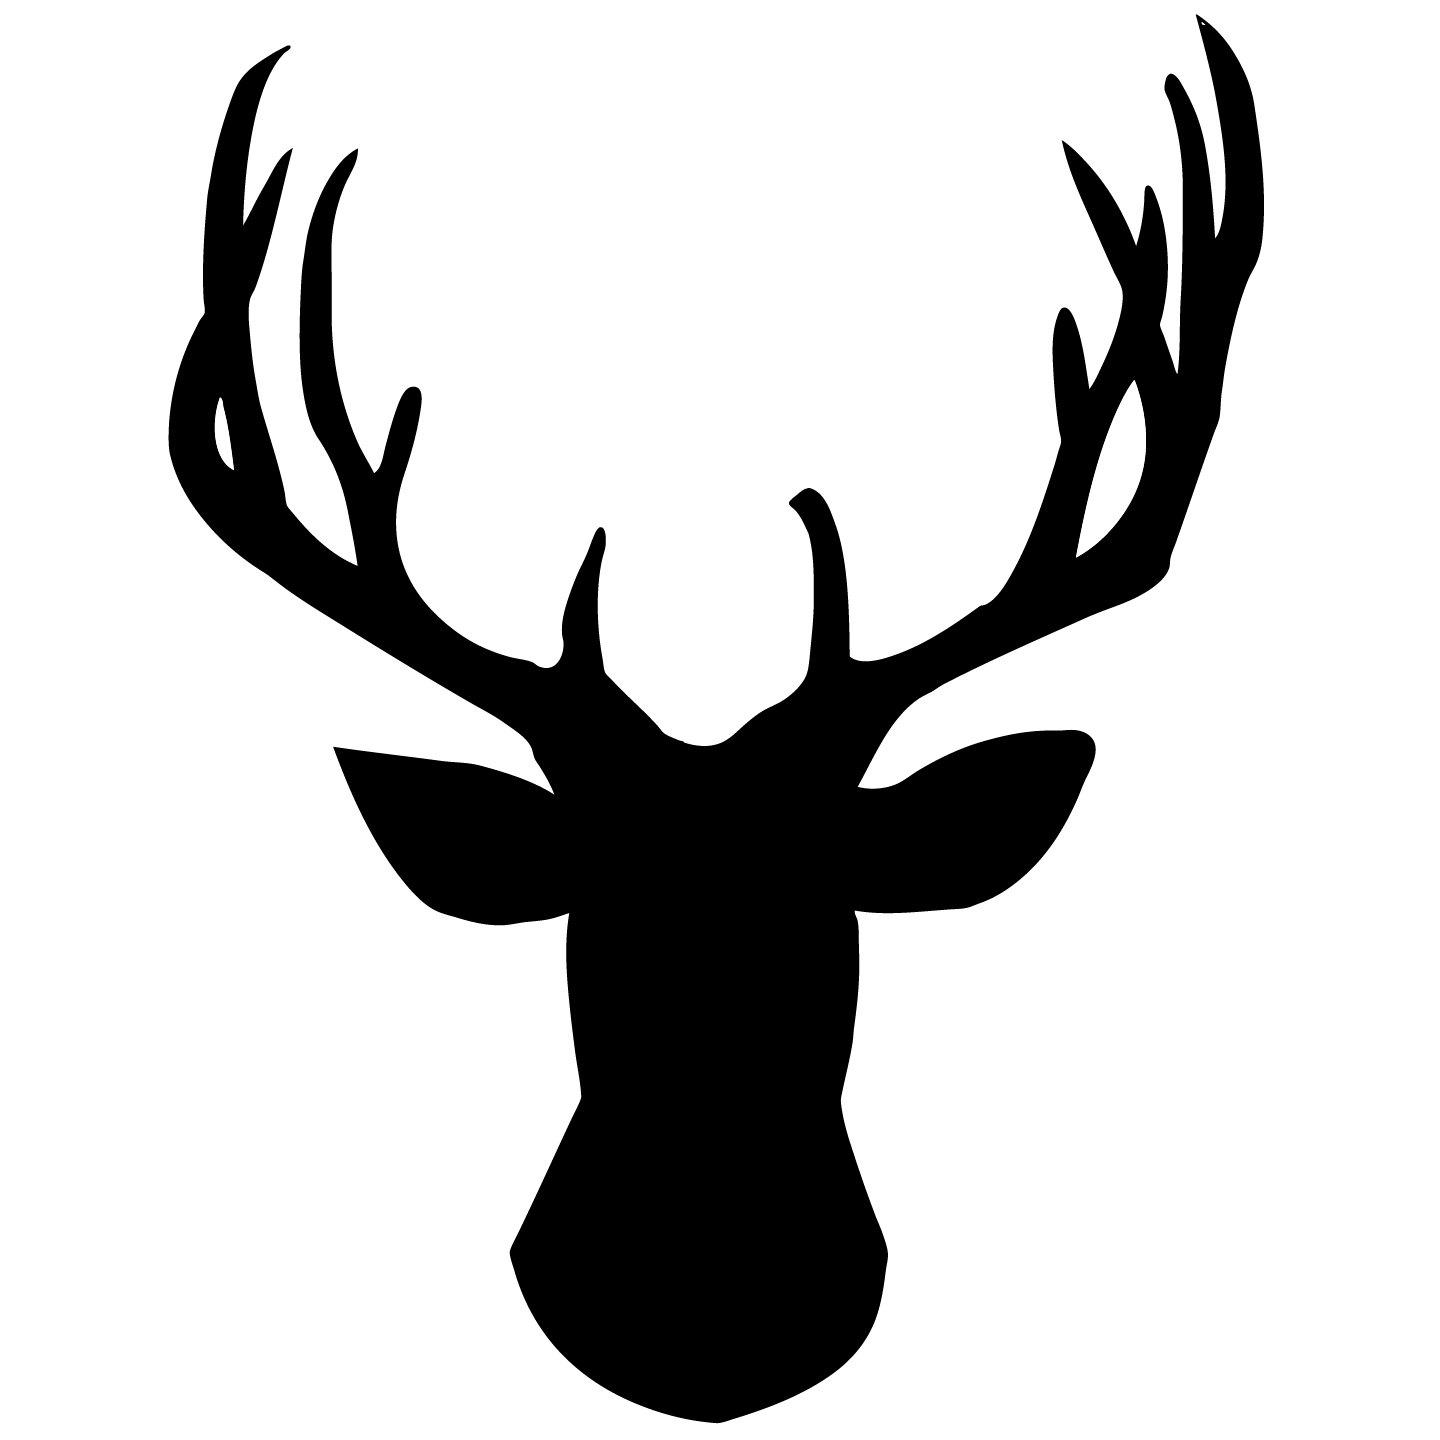 Deer antlers clipart black and white svg free library Free Deer Logo, Download Free Clip Art, Free Clip Art on Clipart Library svg free library